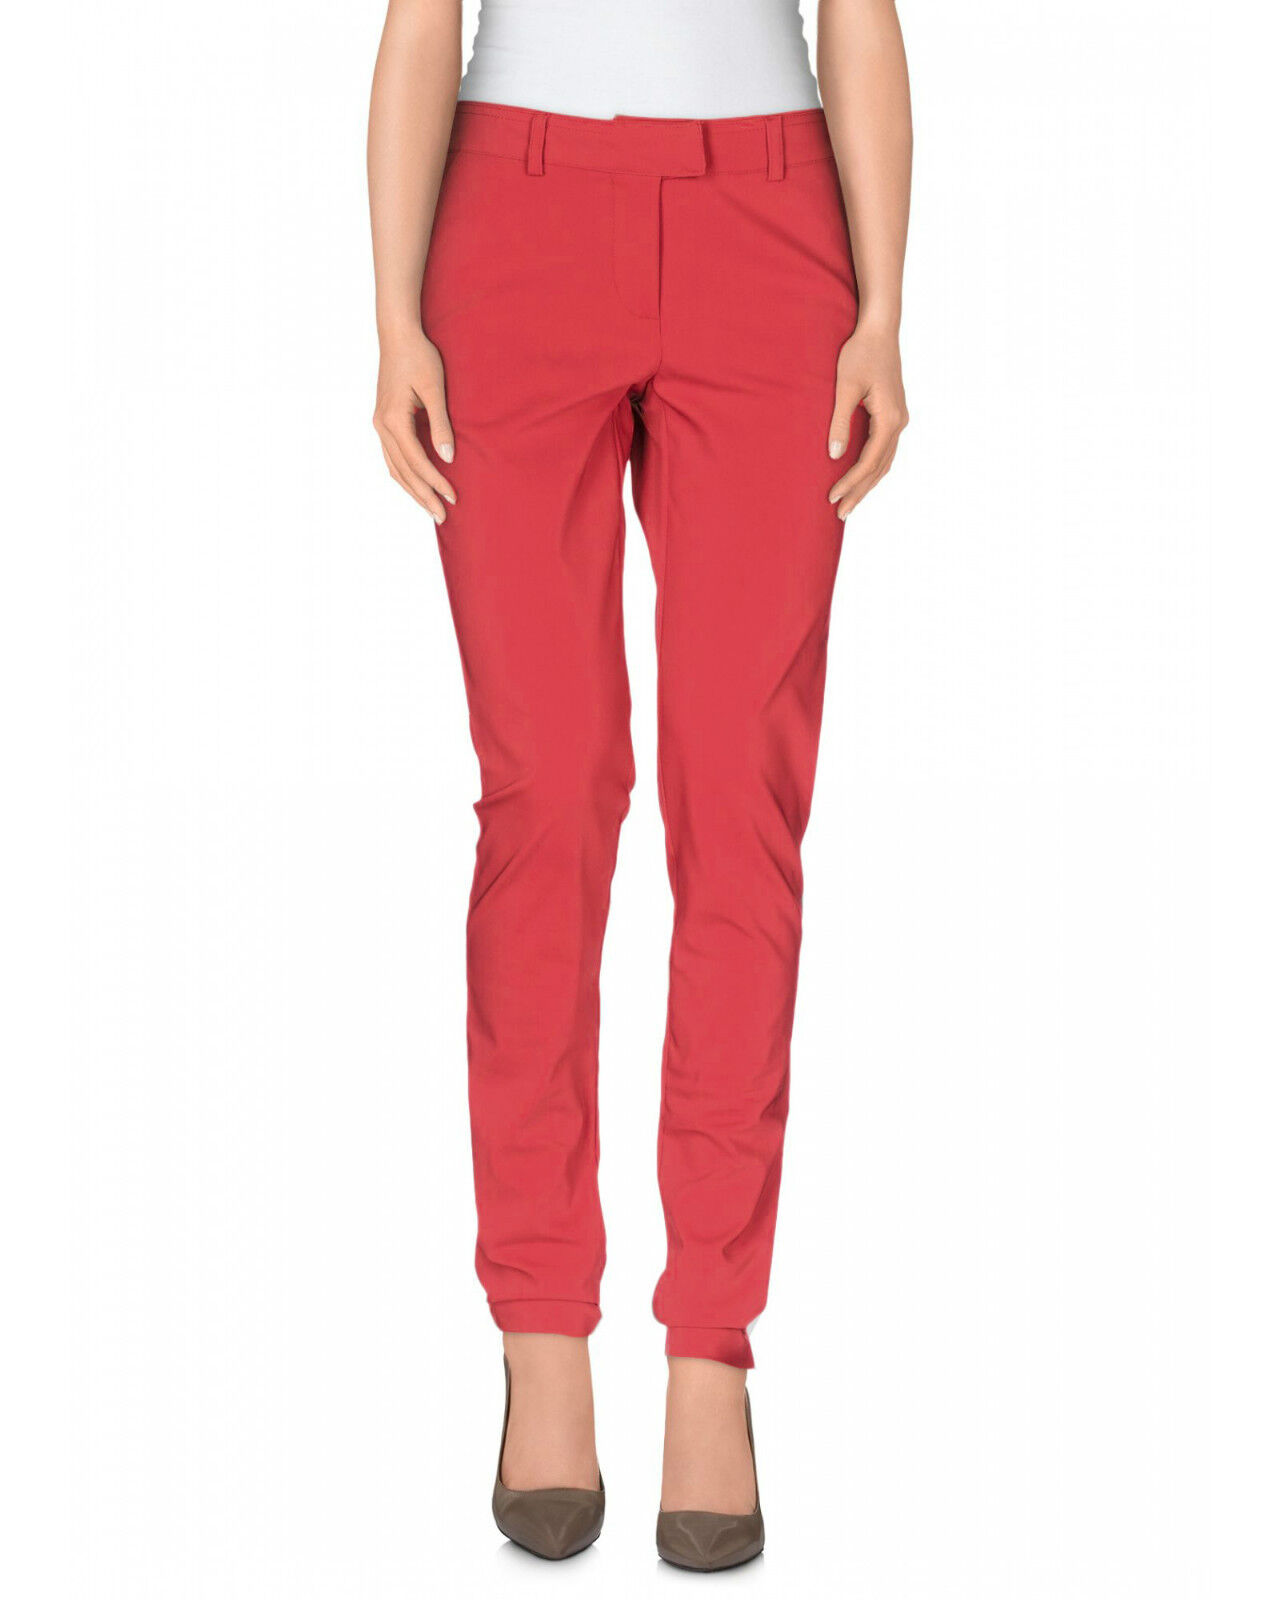 Pantalone G.SEL pants -  red   in PROMOZIONE